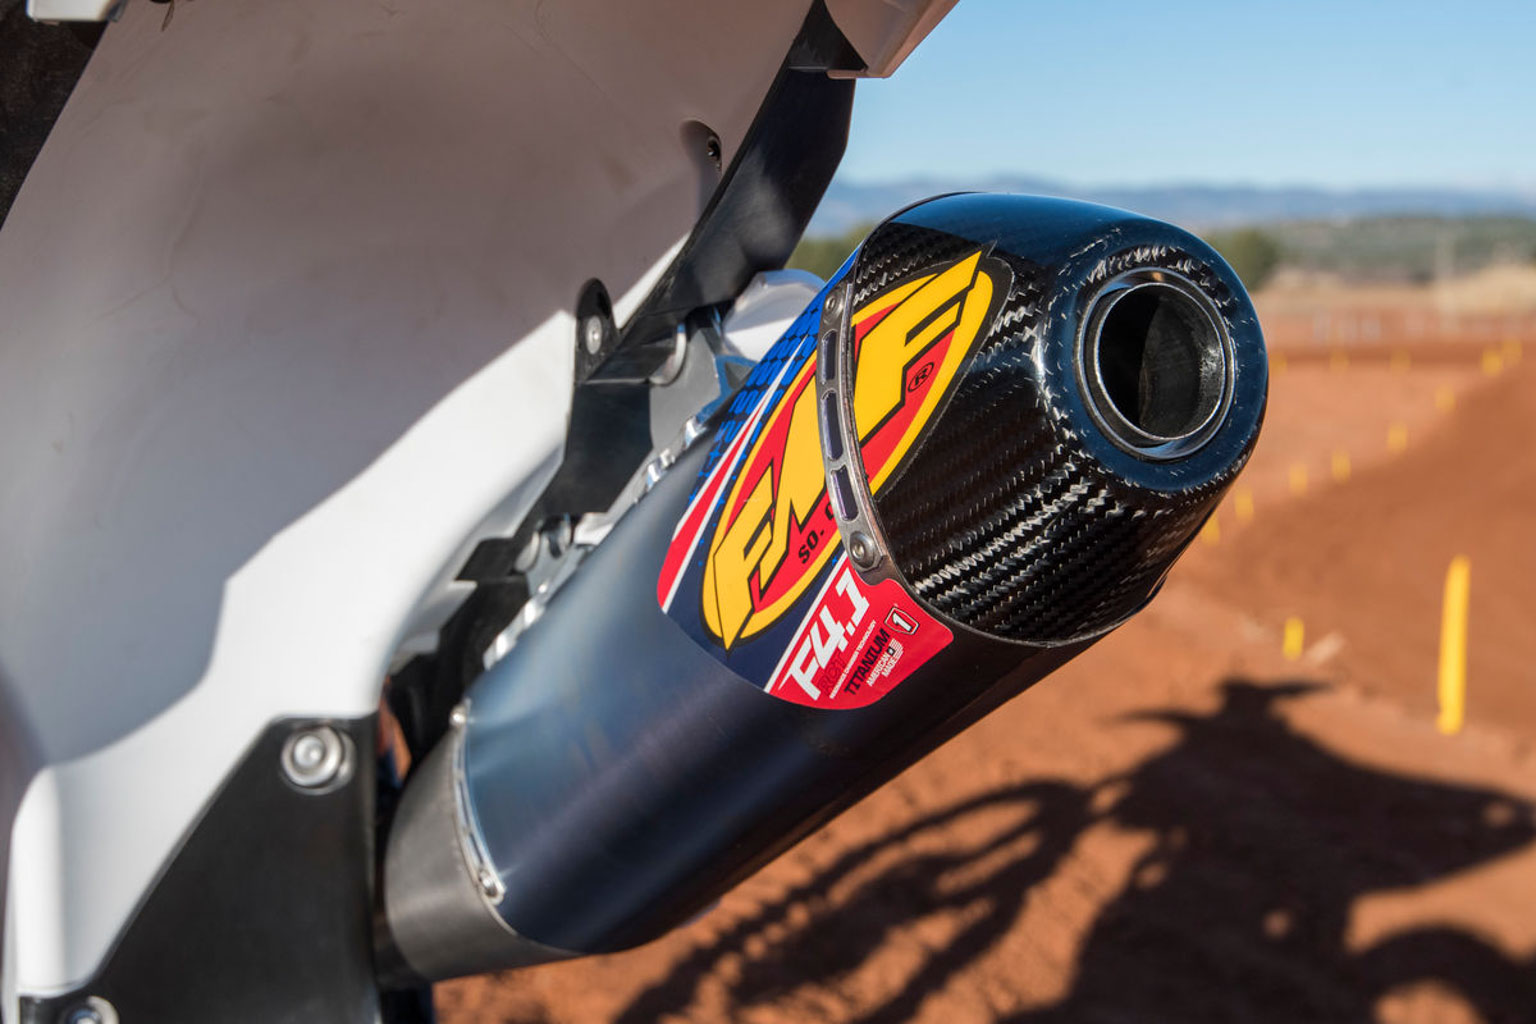 42441_Parts_Rockstar Energy Husqvarna MX2 Factory Racing_shotbybavo_7